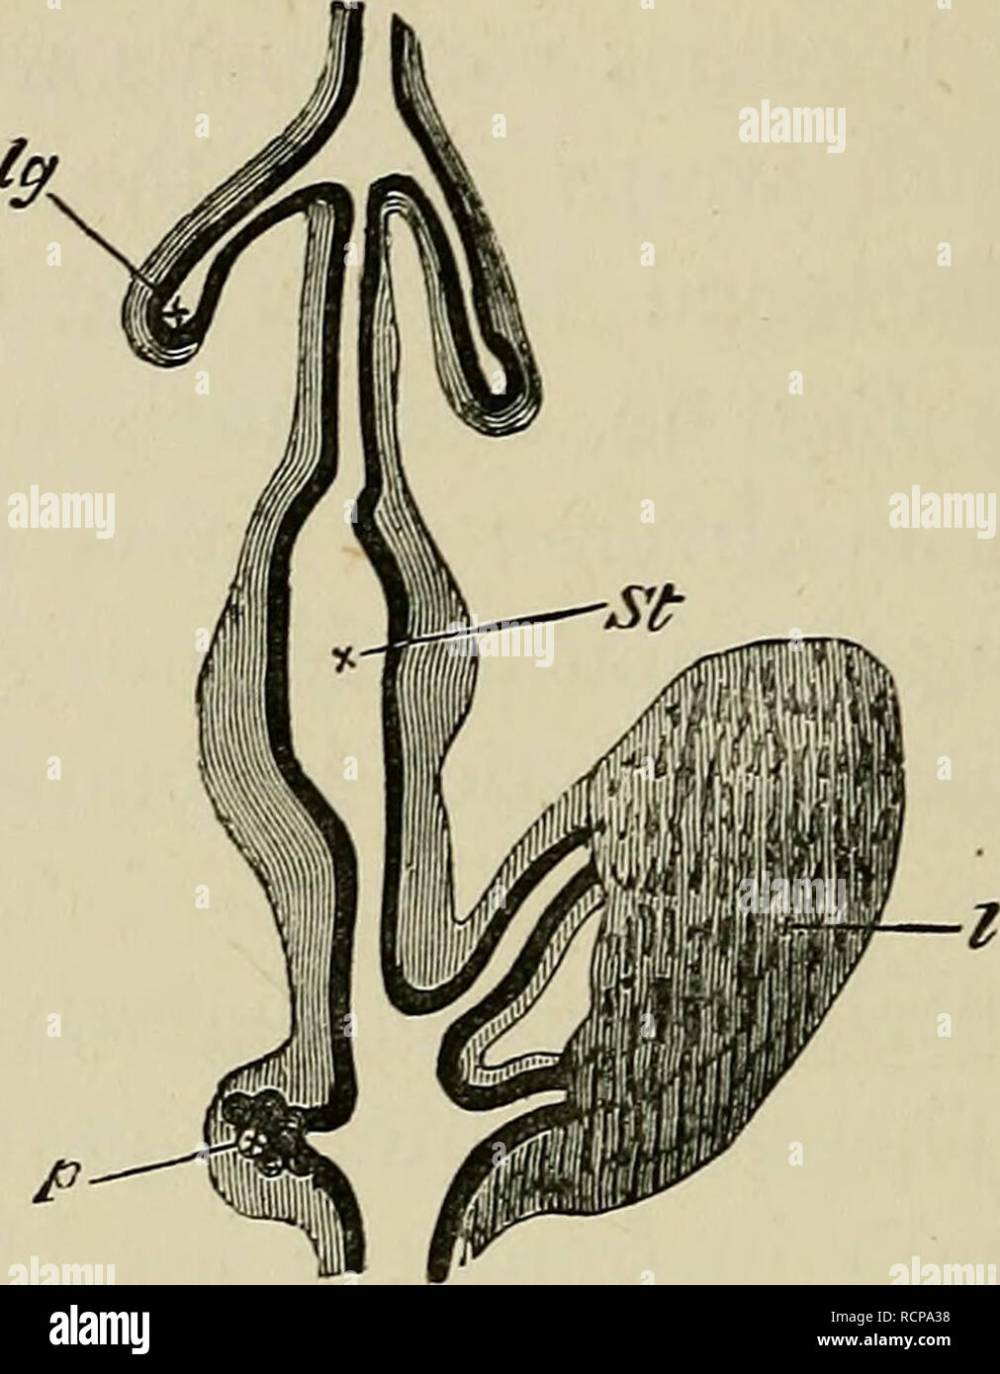 medium resolution of embryology embryology 174 the third day fig 60 chap diagram of a portion of the digestive tract of a chick upon the fourth day copied from gotte